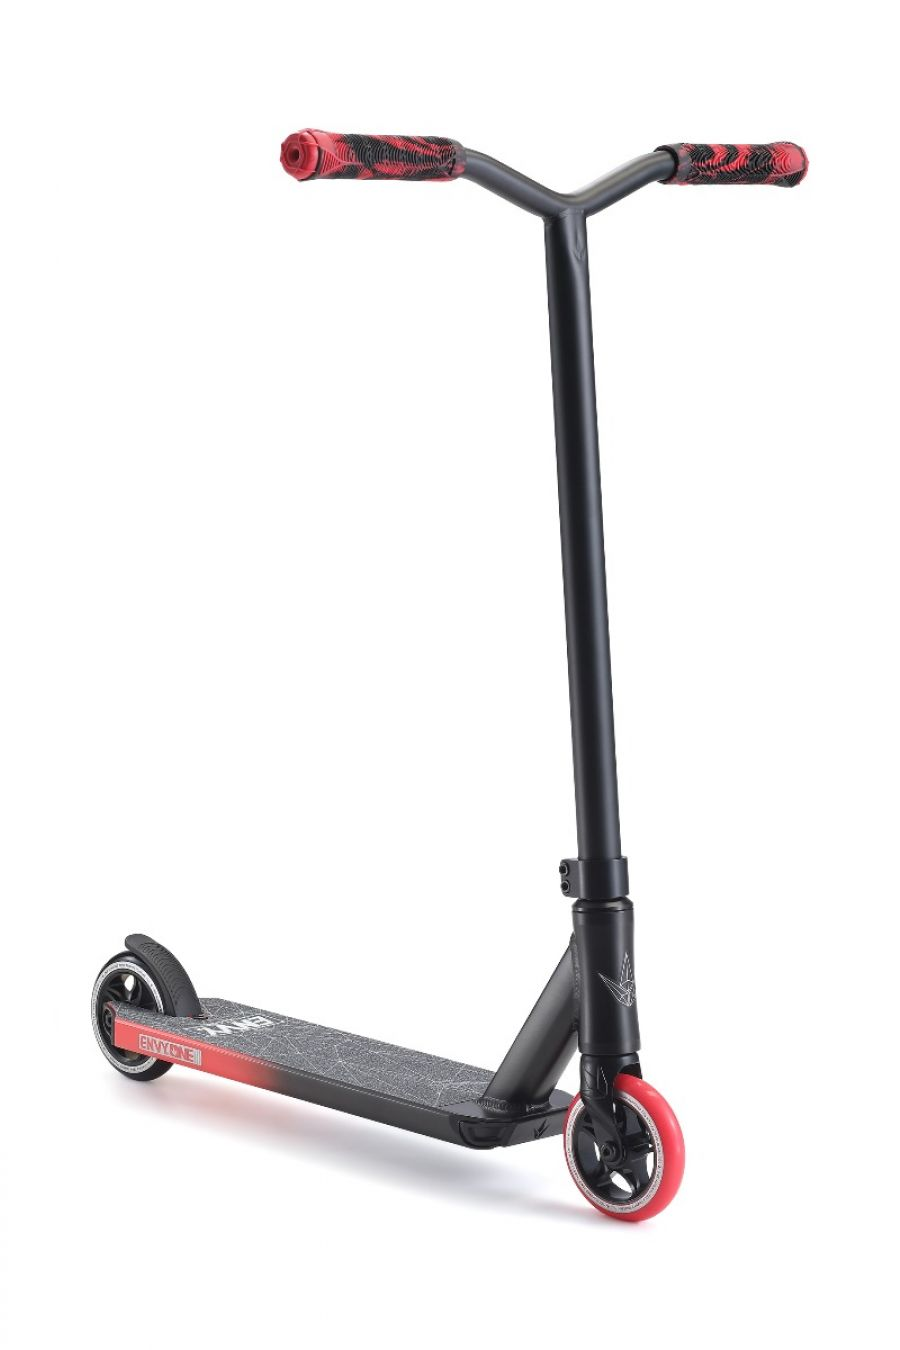 Envy One S3 Complete Scooter (Black / Red)